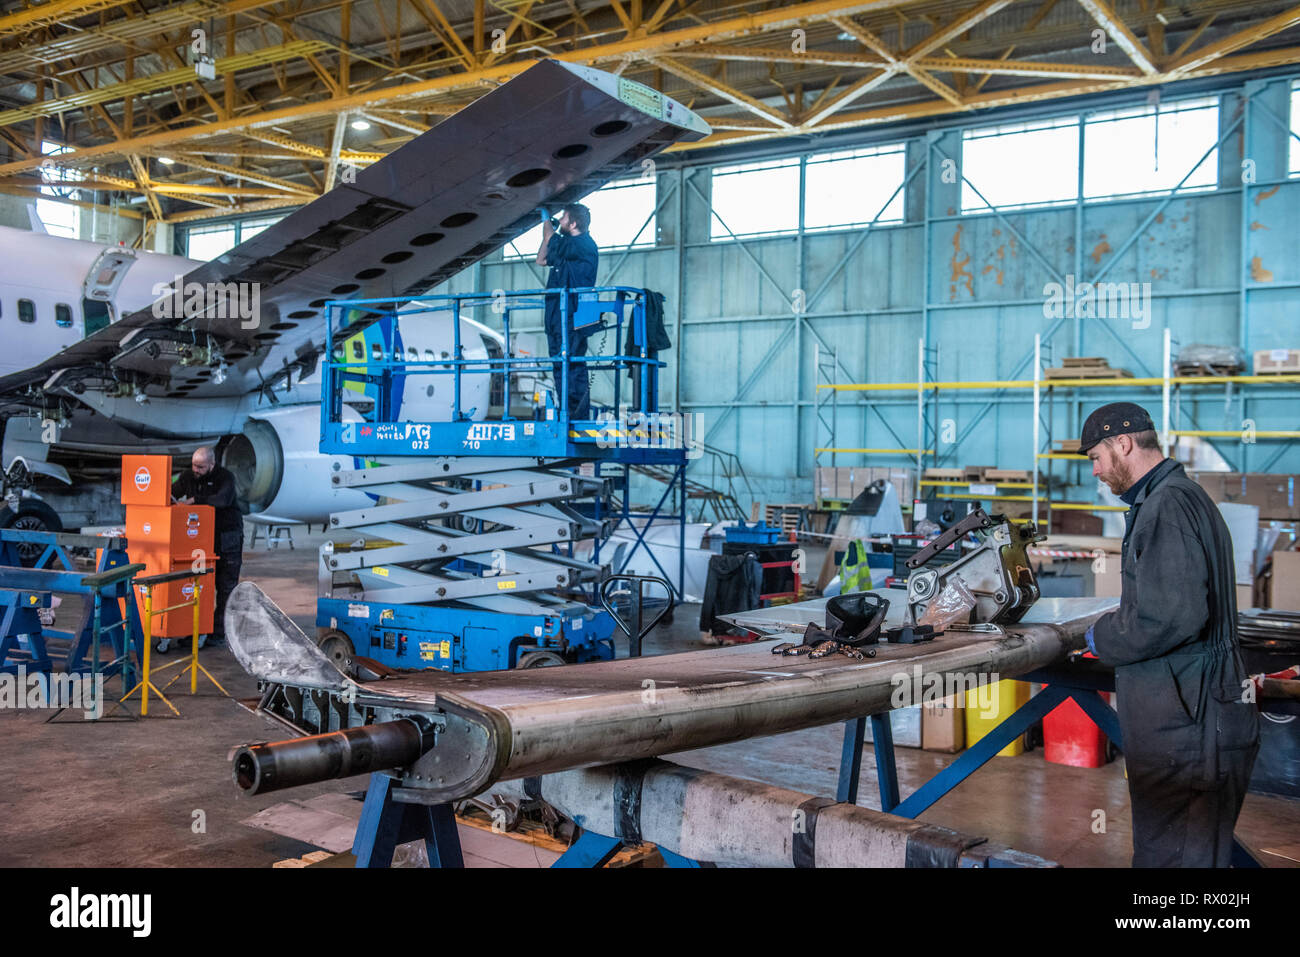 Disassembly of passenger aircraft by E-cube solutions at St Athan's airbase south Wales. Various parts of the aircraft are sold on, re purposed etc. Or whole aircraft can be bought and stripped down or 'teared down' as it's known, according to the customer requirements.The engine's are often the most valuable parts of the aircraft and can be worth as much as 2 - 3 million GBP. This being so many carriers only lease the engines and the owners then decide on their fate once the aircraft has been retired from service. Other parts might be sold off and repurposed as furniture for the home, office - Stock Image